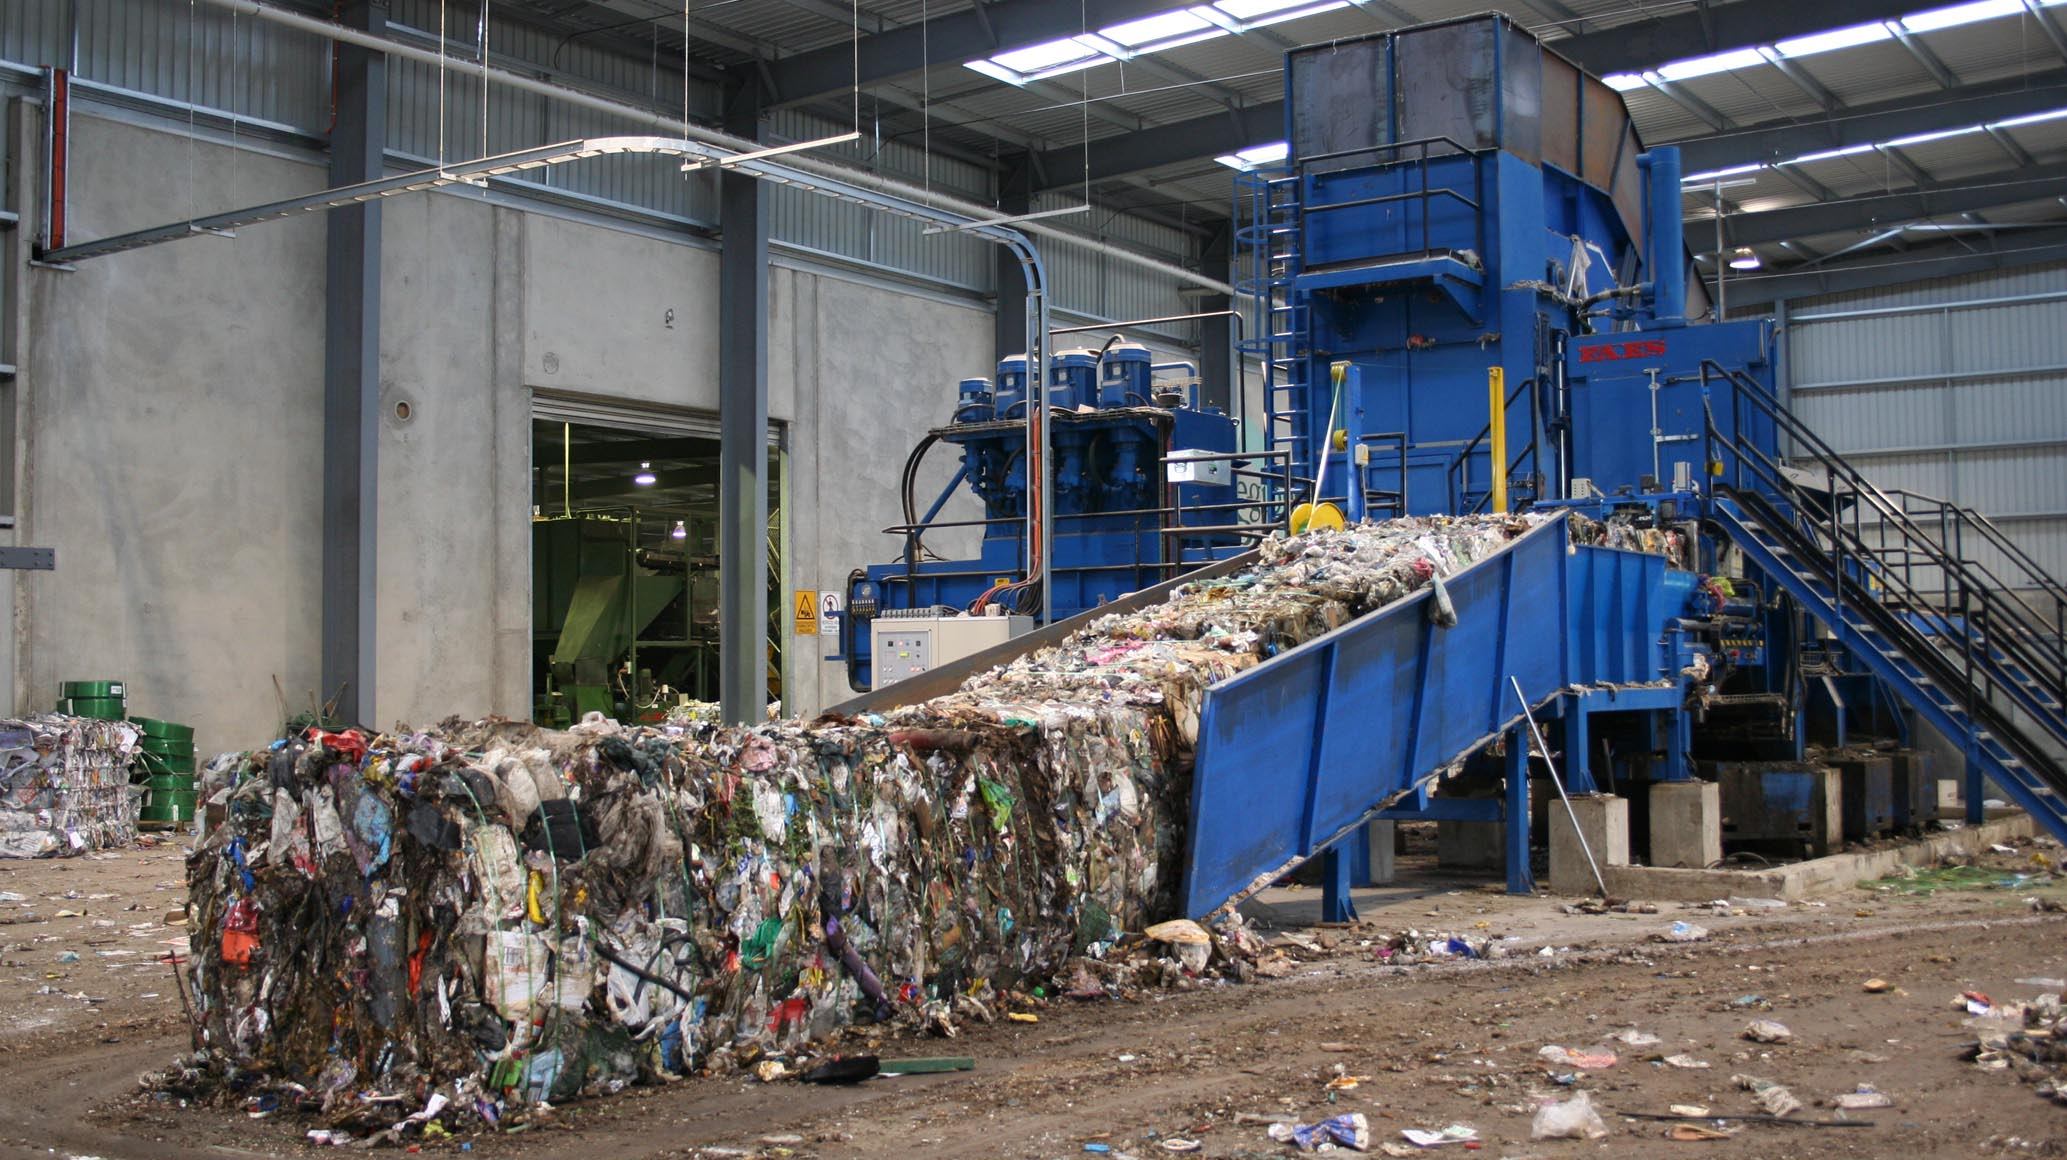 Australia Firm Plans 520mln Waste To Energy Plant In Hcmc